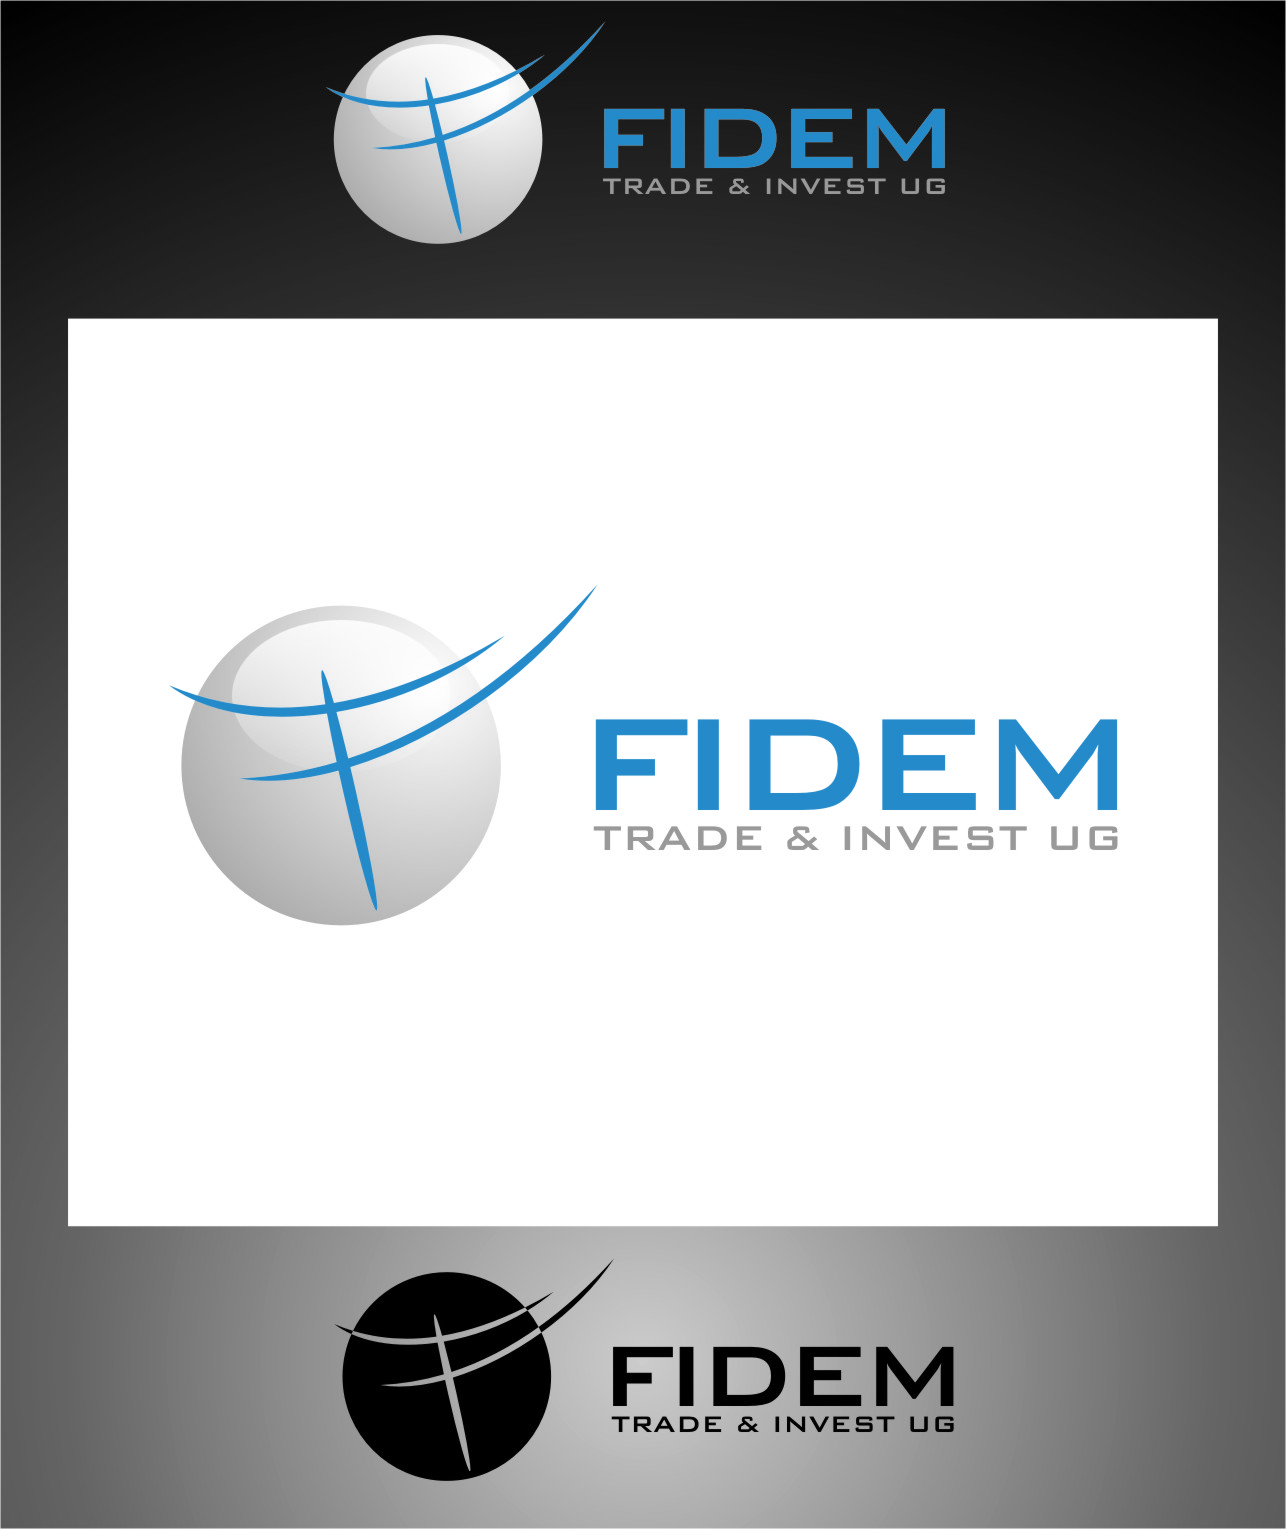 Logo Design by RasYa Muhammad Athaya - Entry No. 335 in the Logo Design Contest Professional Logo Design for FIDEM Trade & Invest UG.